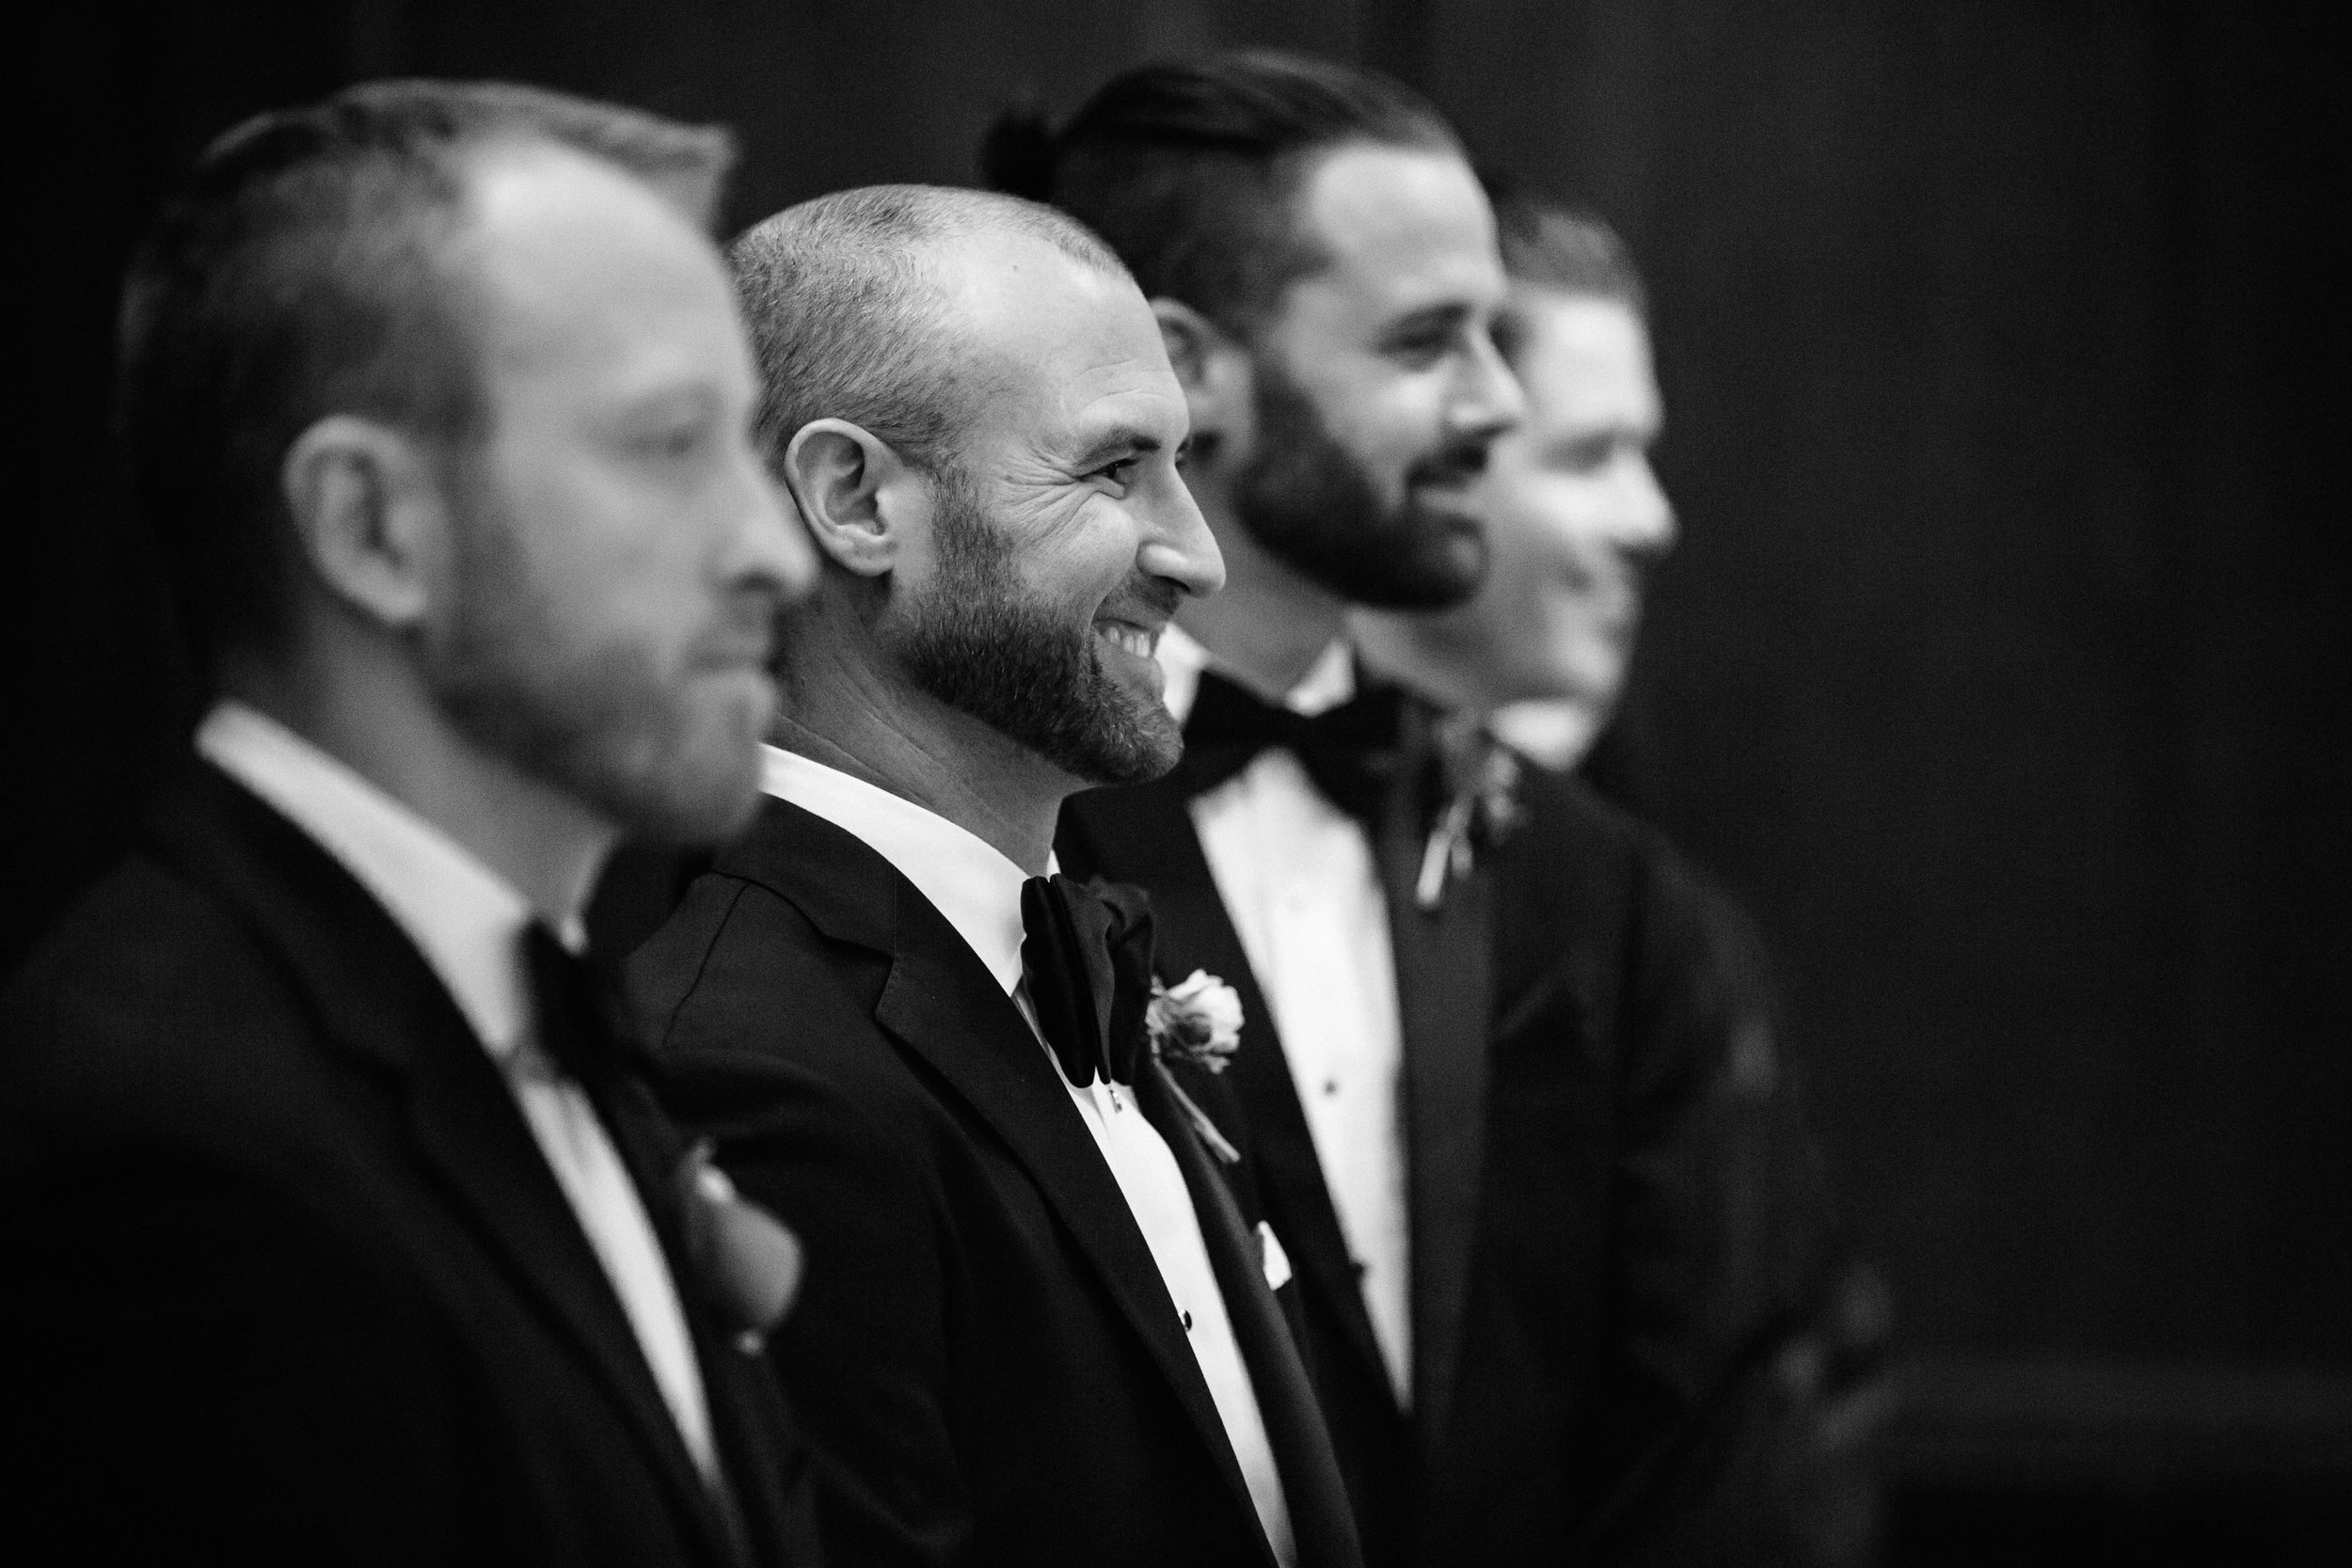 34 Richie's reaction as he sees Tanya walk down the aisle